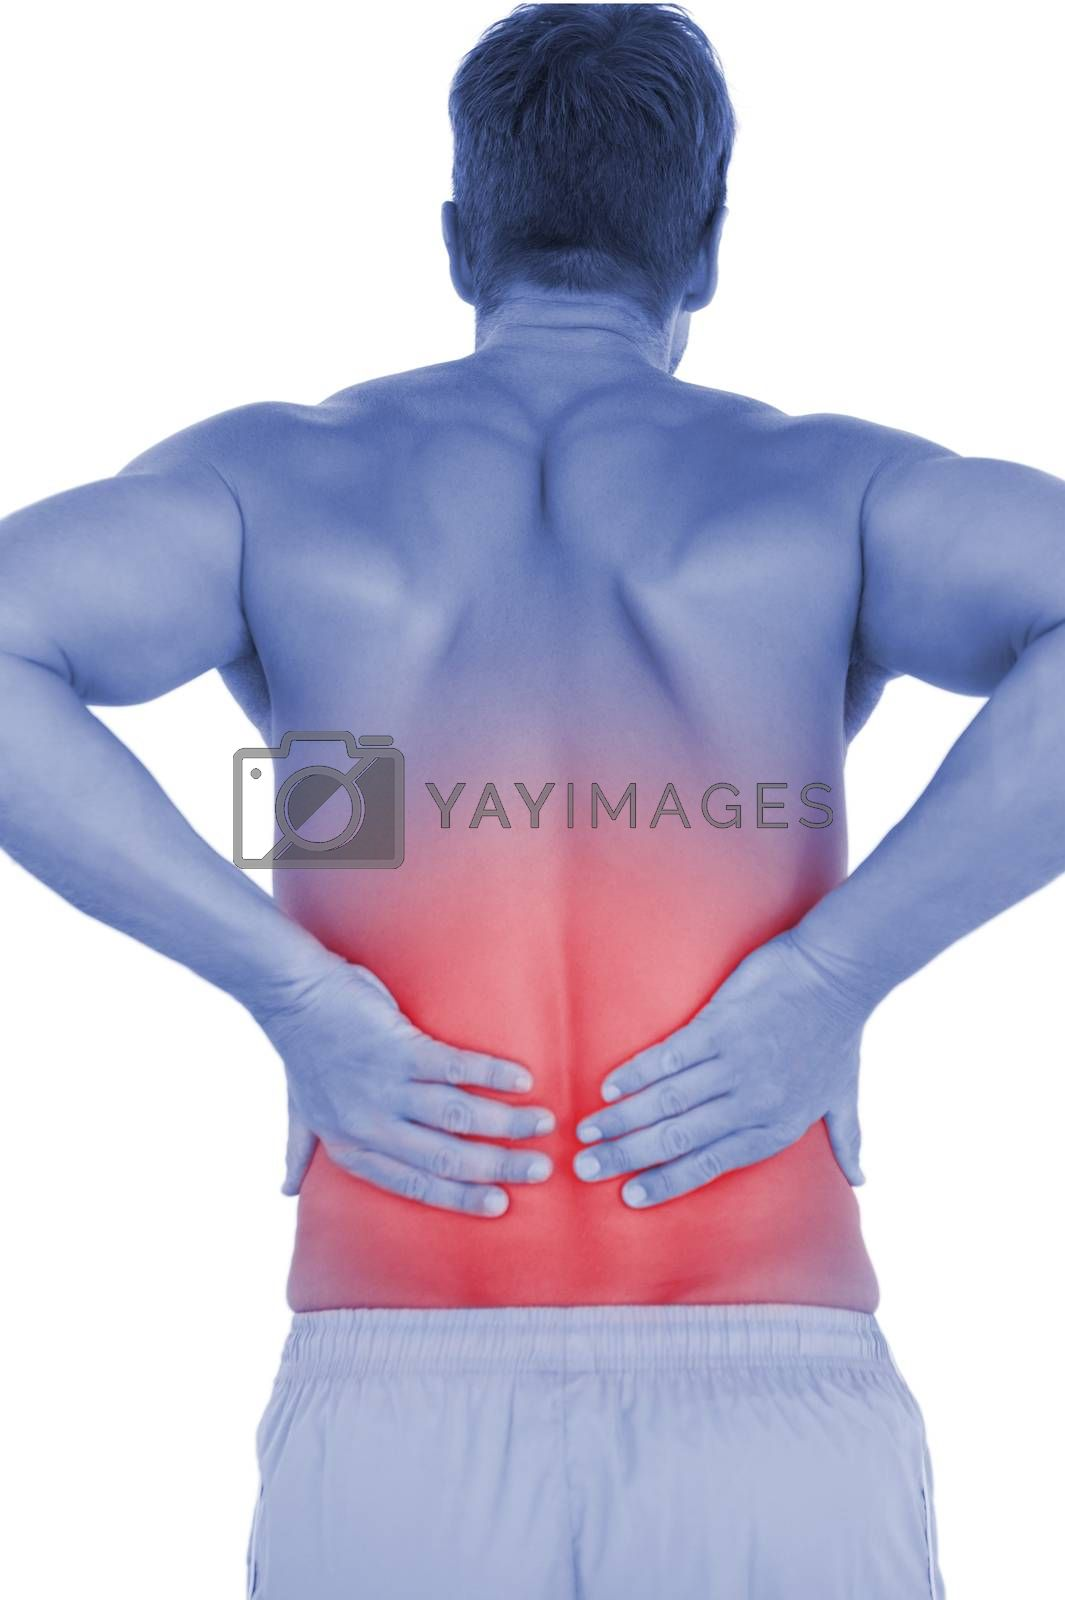 Shirtless Man Suffering From Lower Back Pain Royalty Free Stock Image Yayimages Royalty Free Stock Photos And Vectors